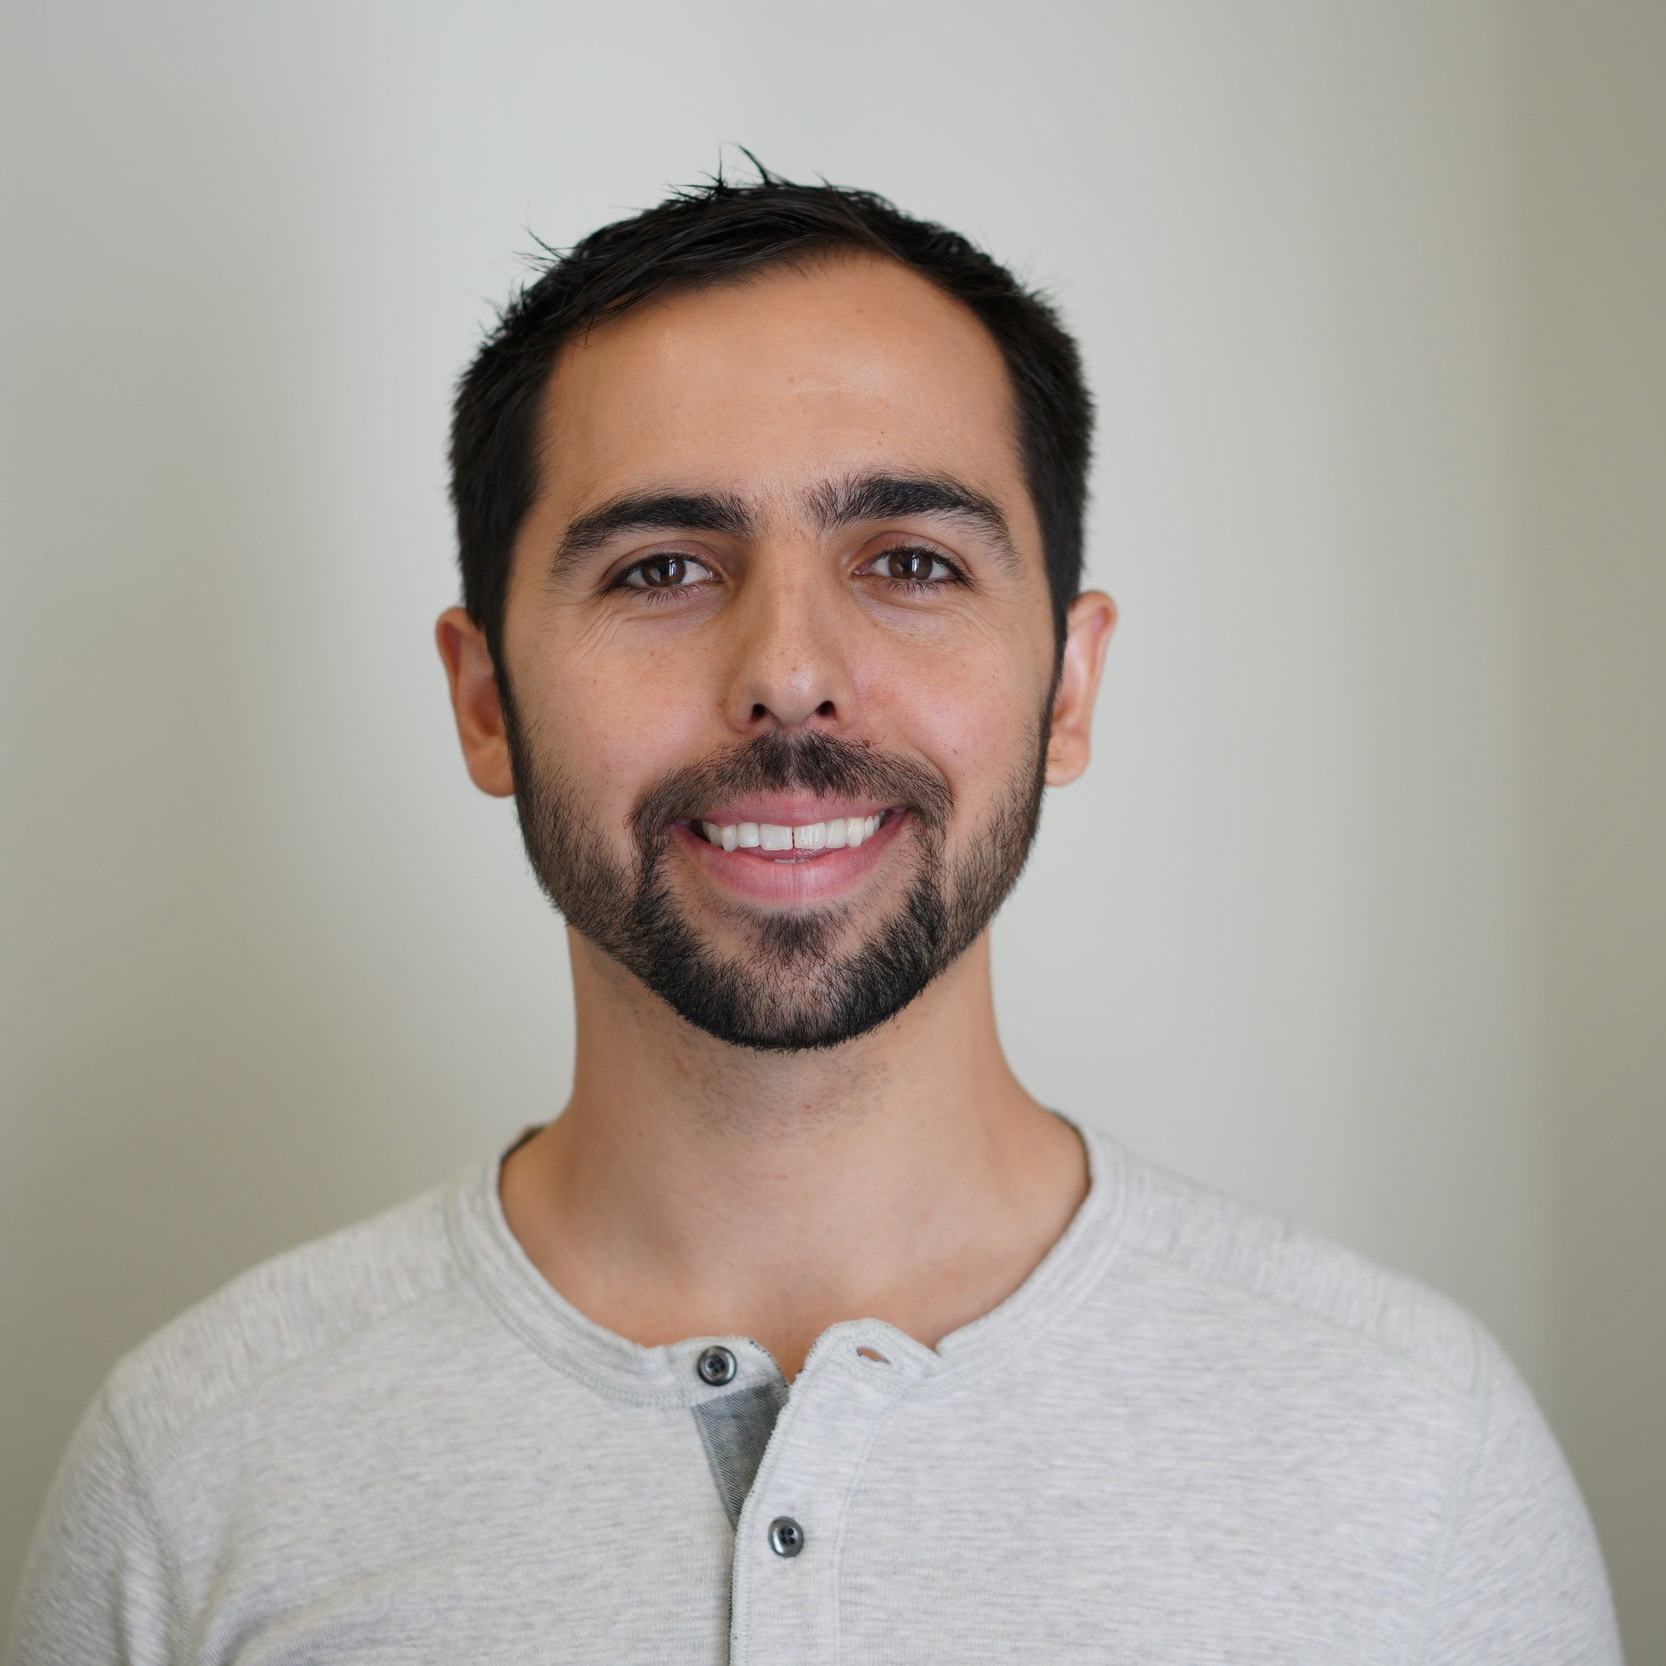 Soso Sazesh is the CEO and Founder of Growth Pilots, a leading digital marketing agency that partners with best-in-class technology companies to scale their paid advertising channels. He is also the Founding Partner of Tempo Ventures, an investment firm that helps portfolio companies with growth and marketing challenges.